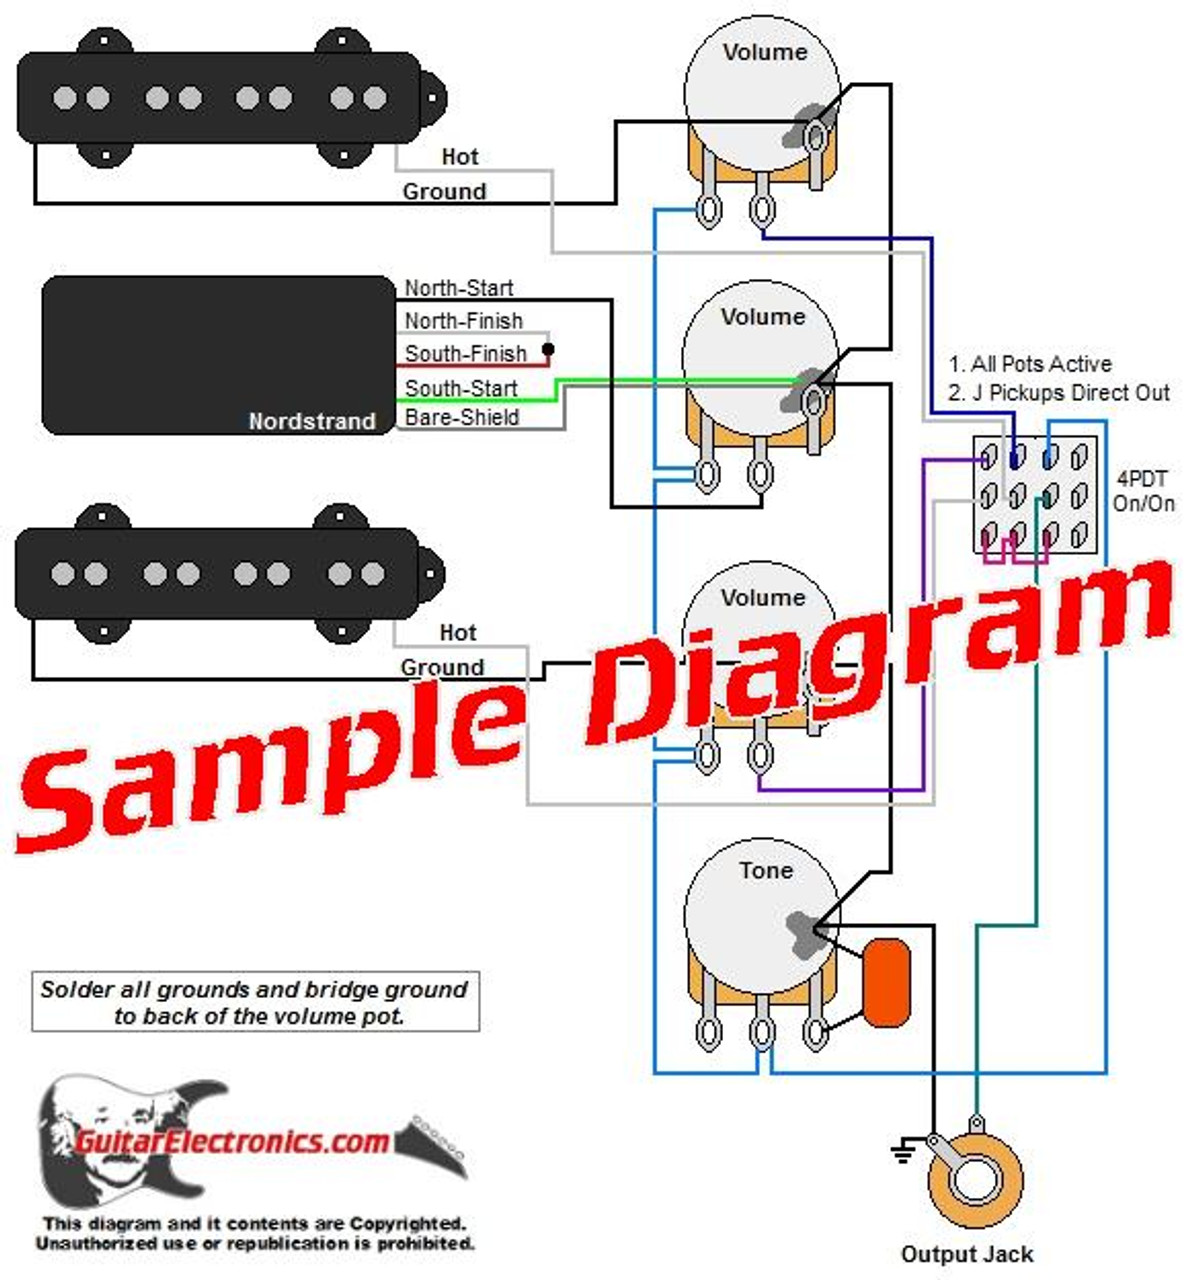 3 Pickup Custom Designed Guitar Wiring Diagrams | Guitar Pick Up Switch Wiring Diagram |  | Guitar Electronics